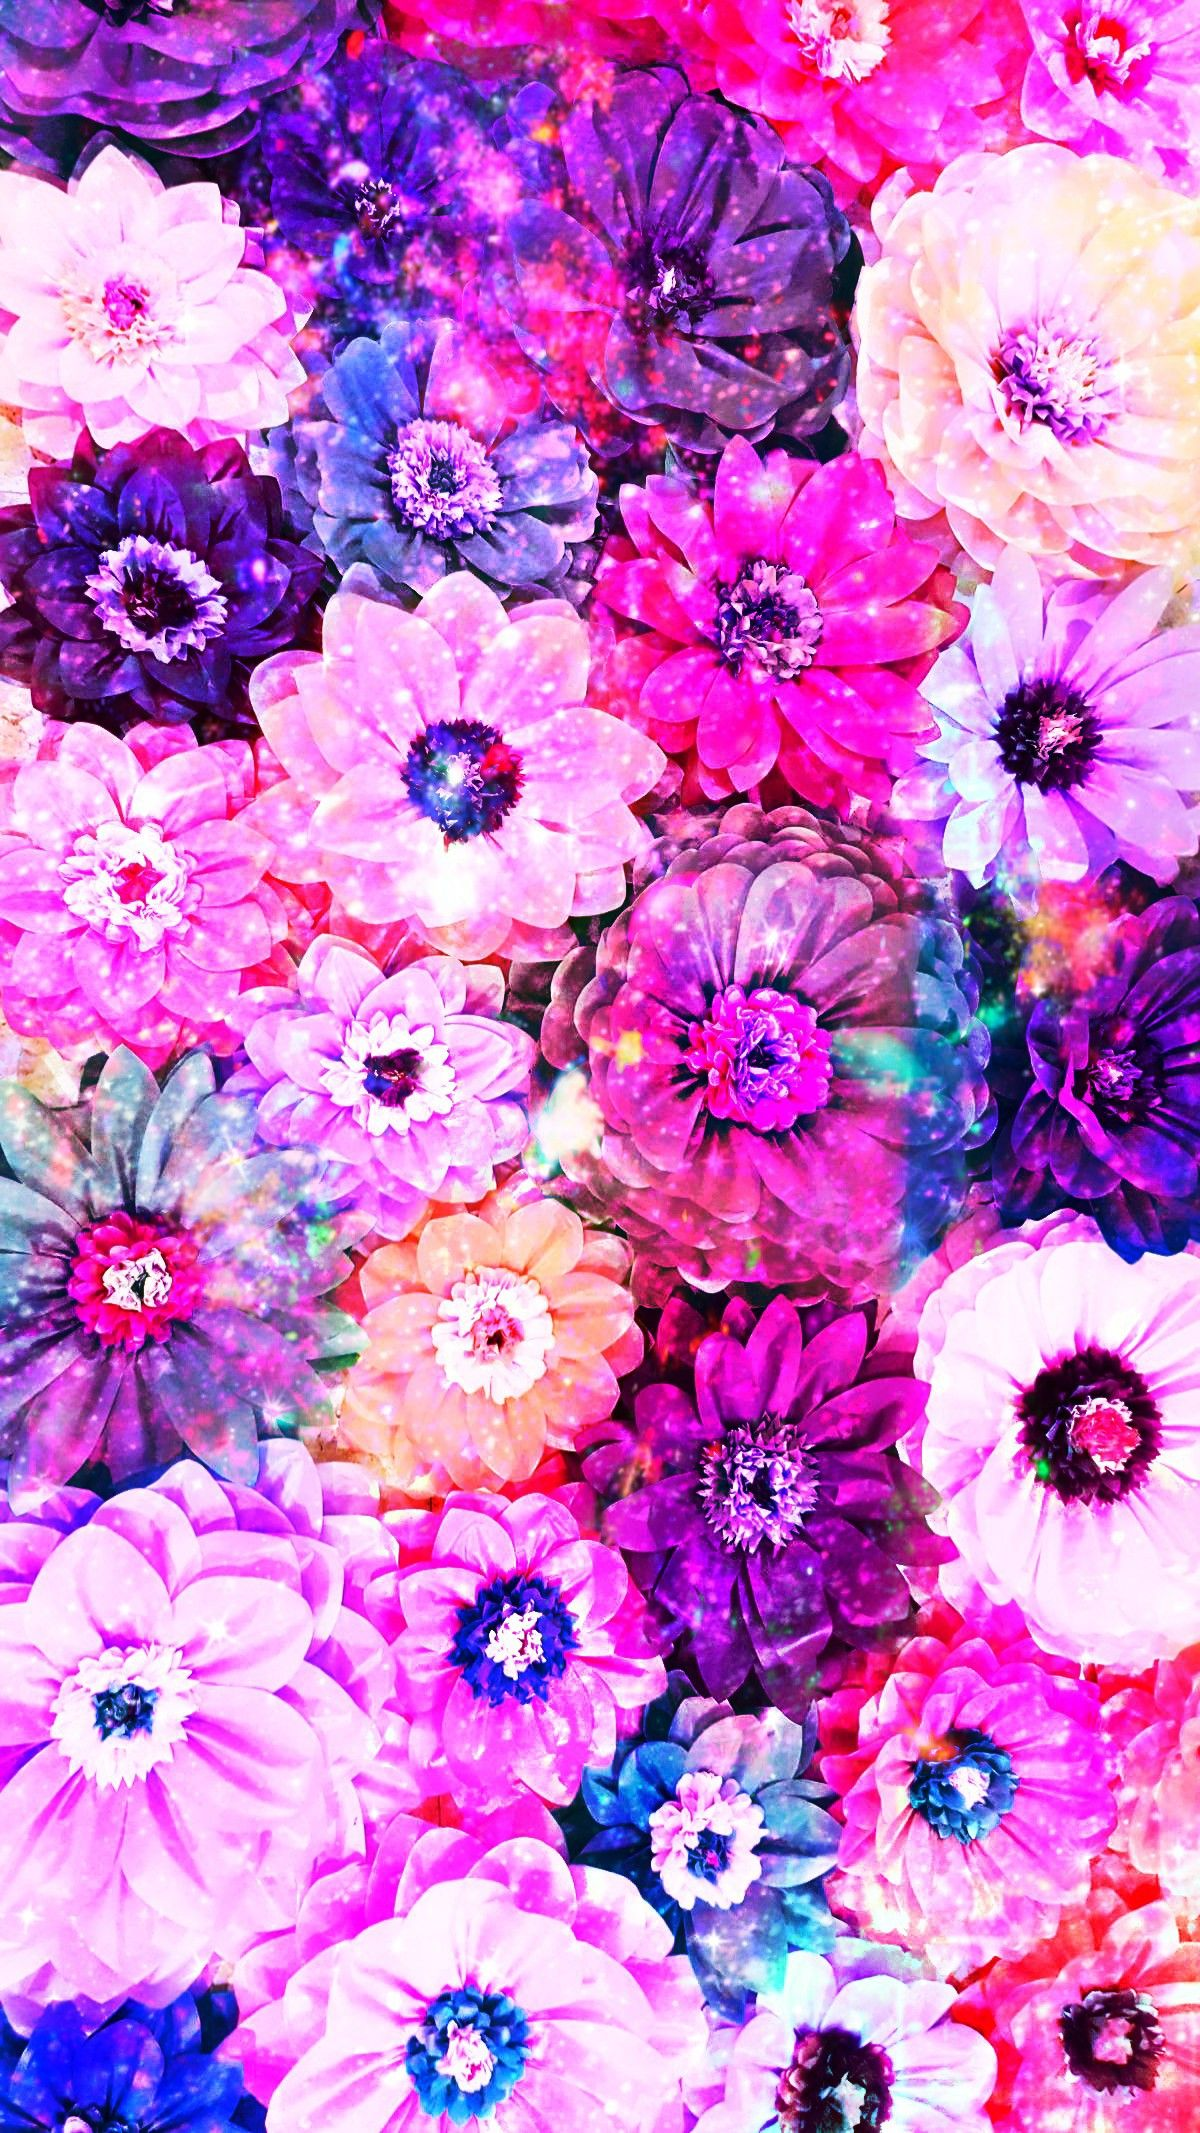 Pin By Irene Thomas On Wallpapers Iphone Vintage Flowers Wallpaper Flower Wallpaper Flower Background Wallpaper